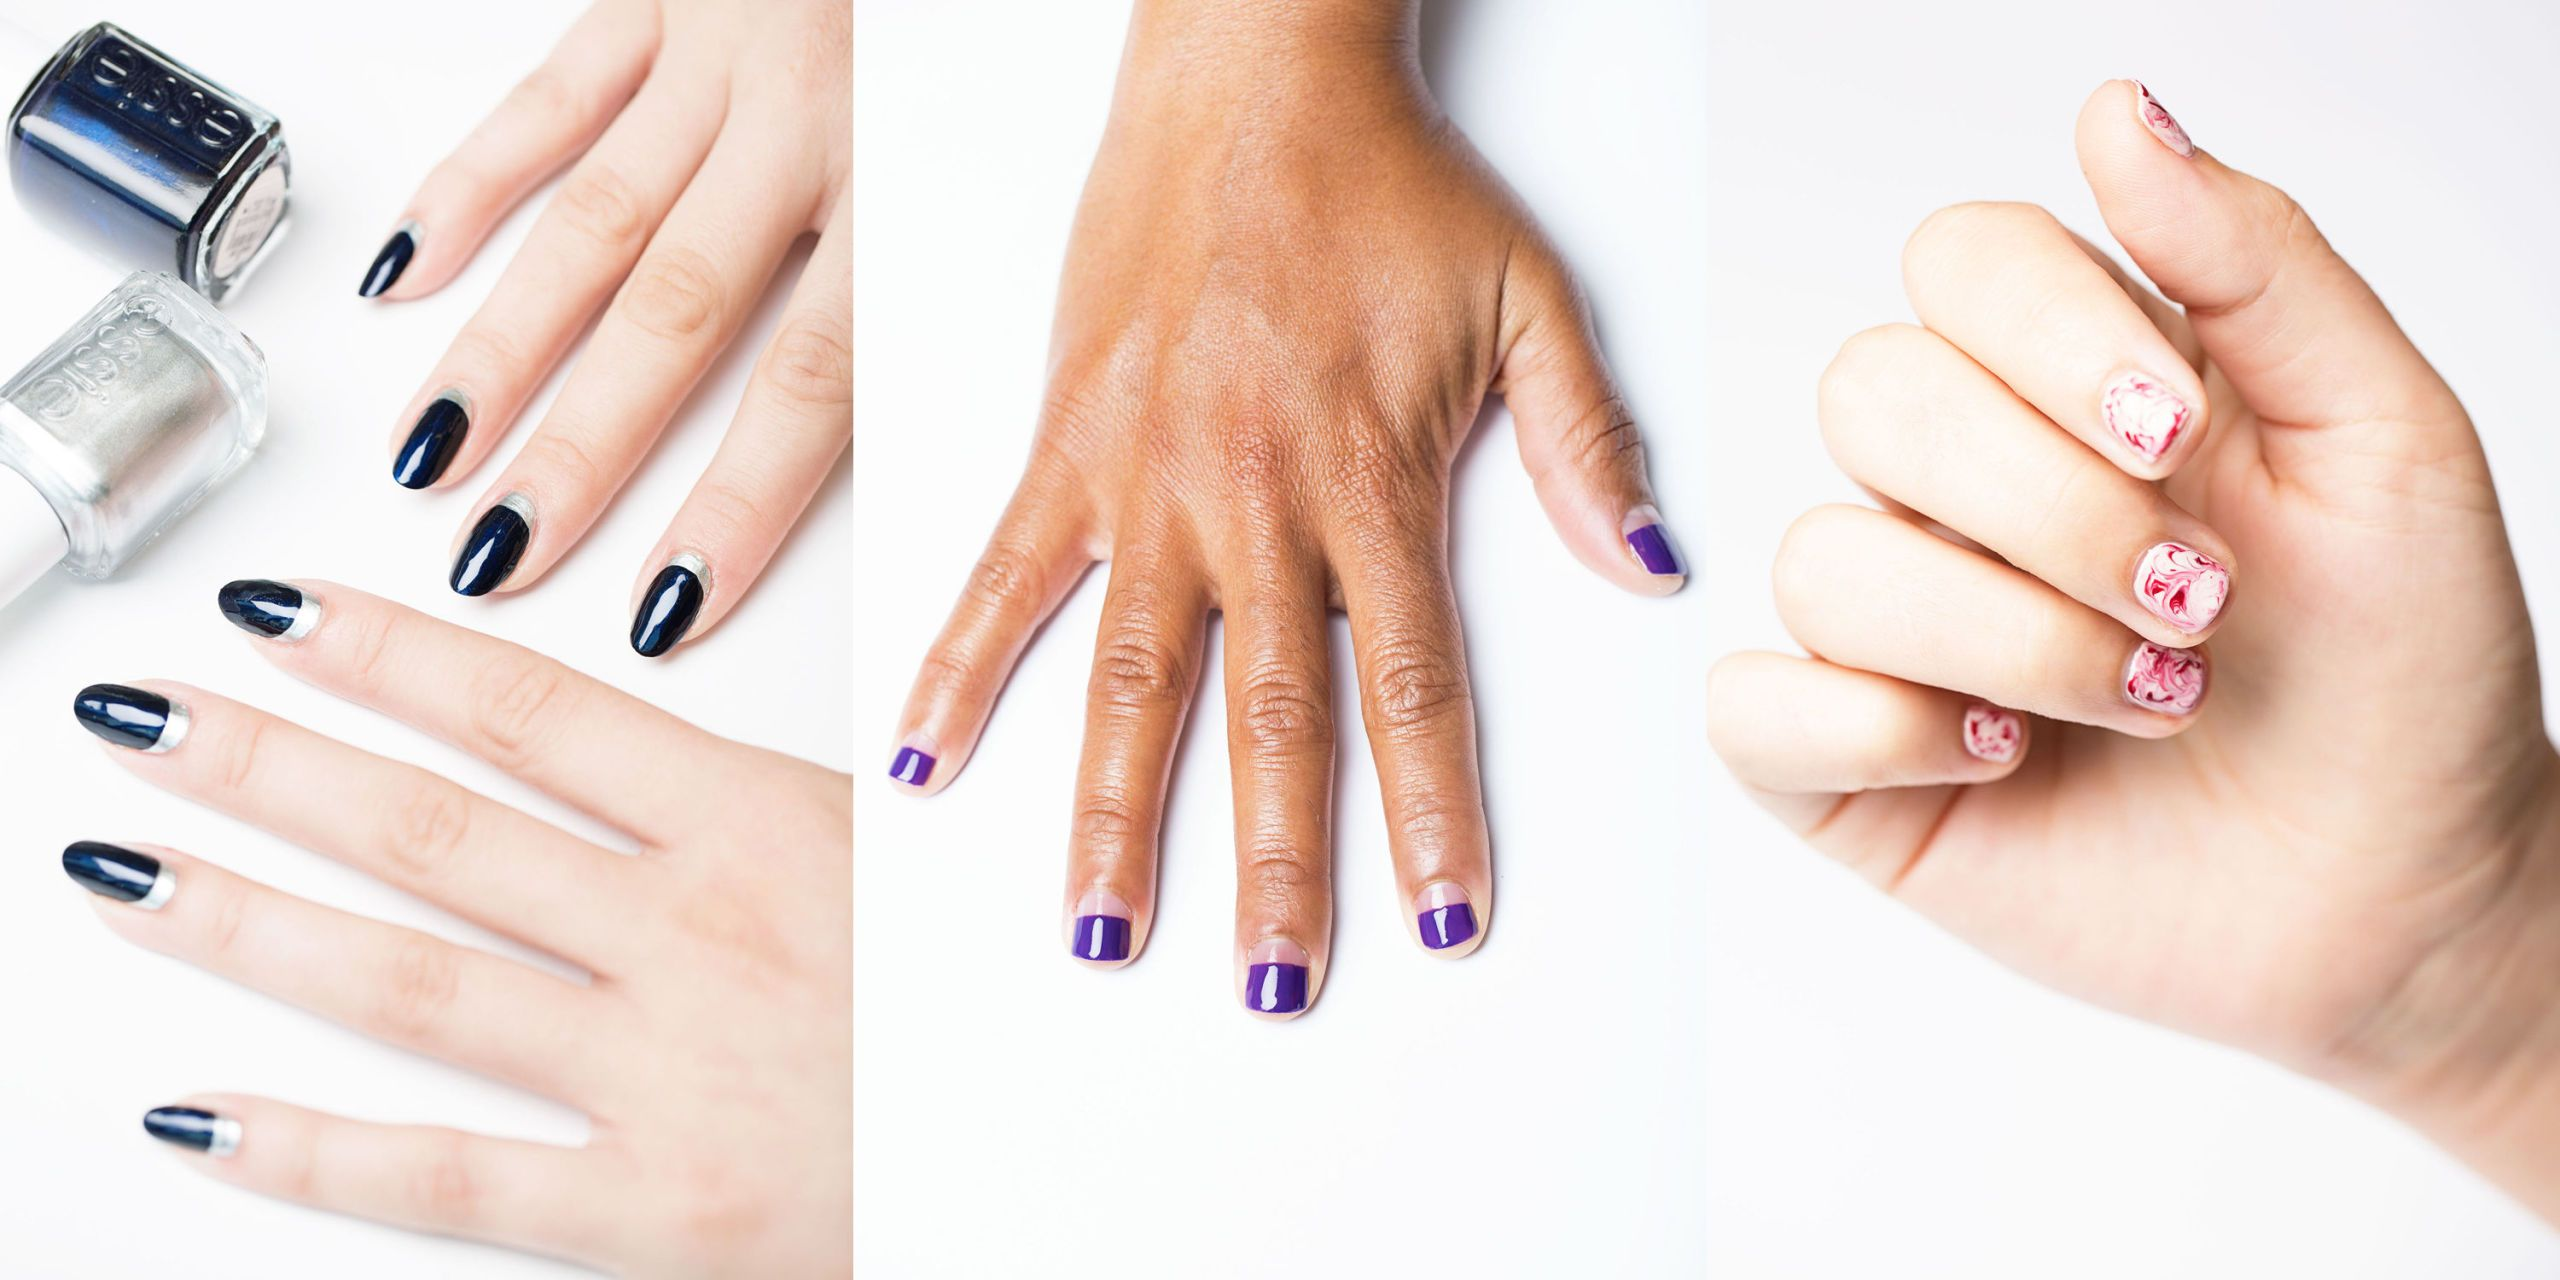 These At Home Designs Created By Nail Artist Holly Falcone Look Way More  Complicated Than They Really Are. We Promise!